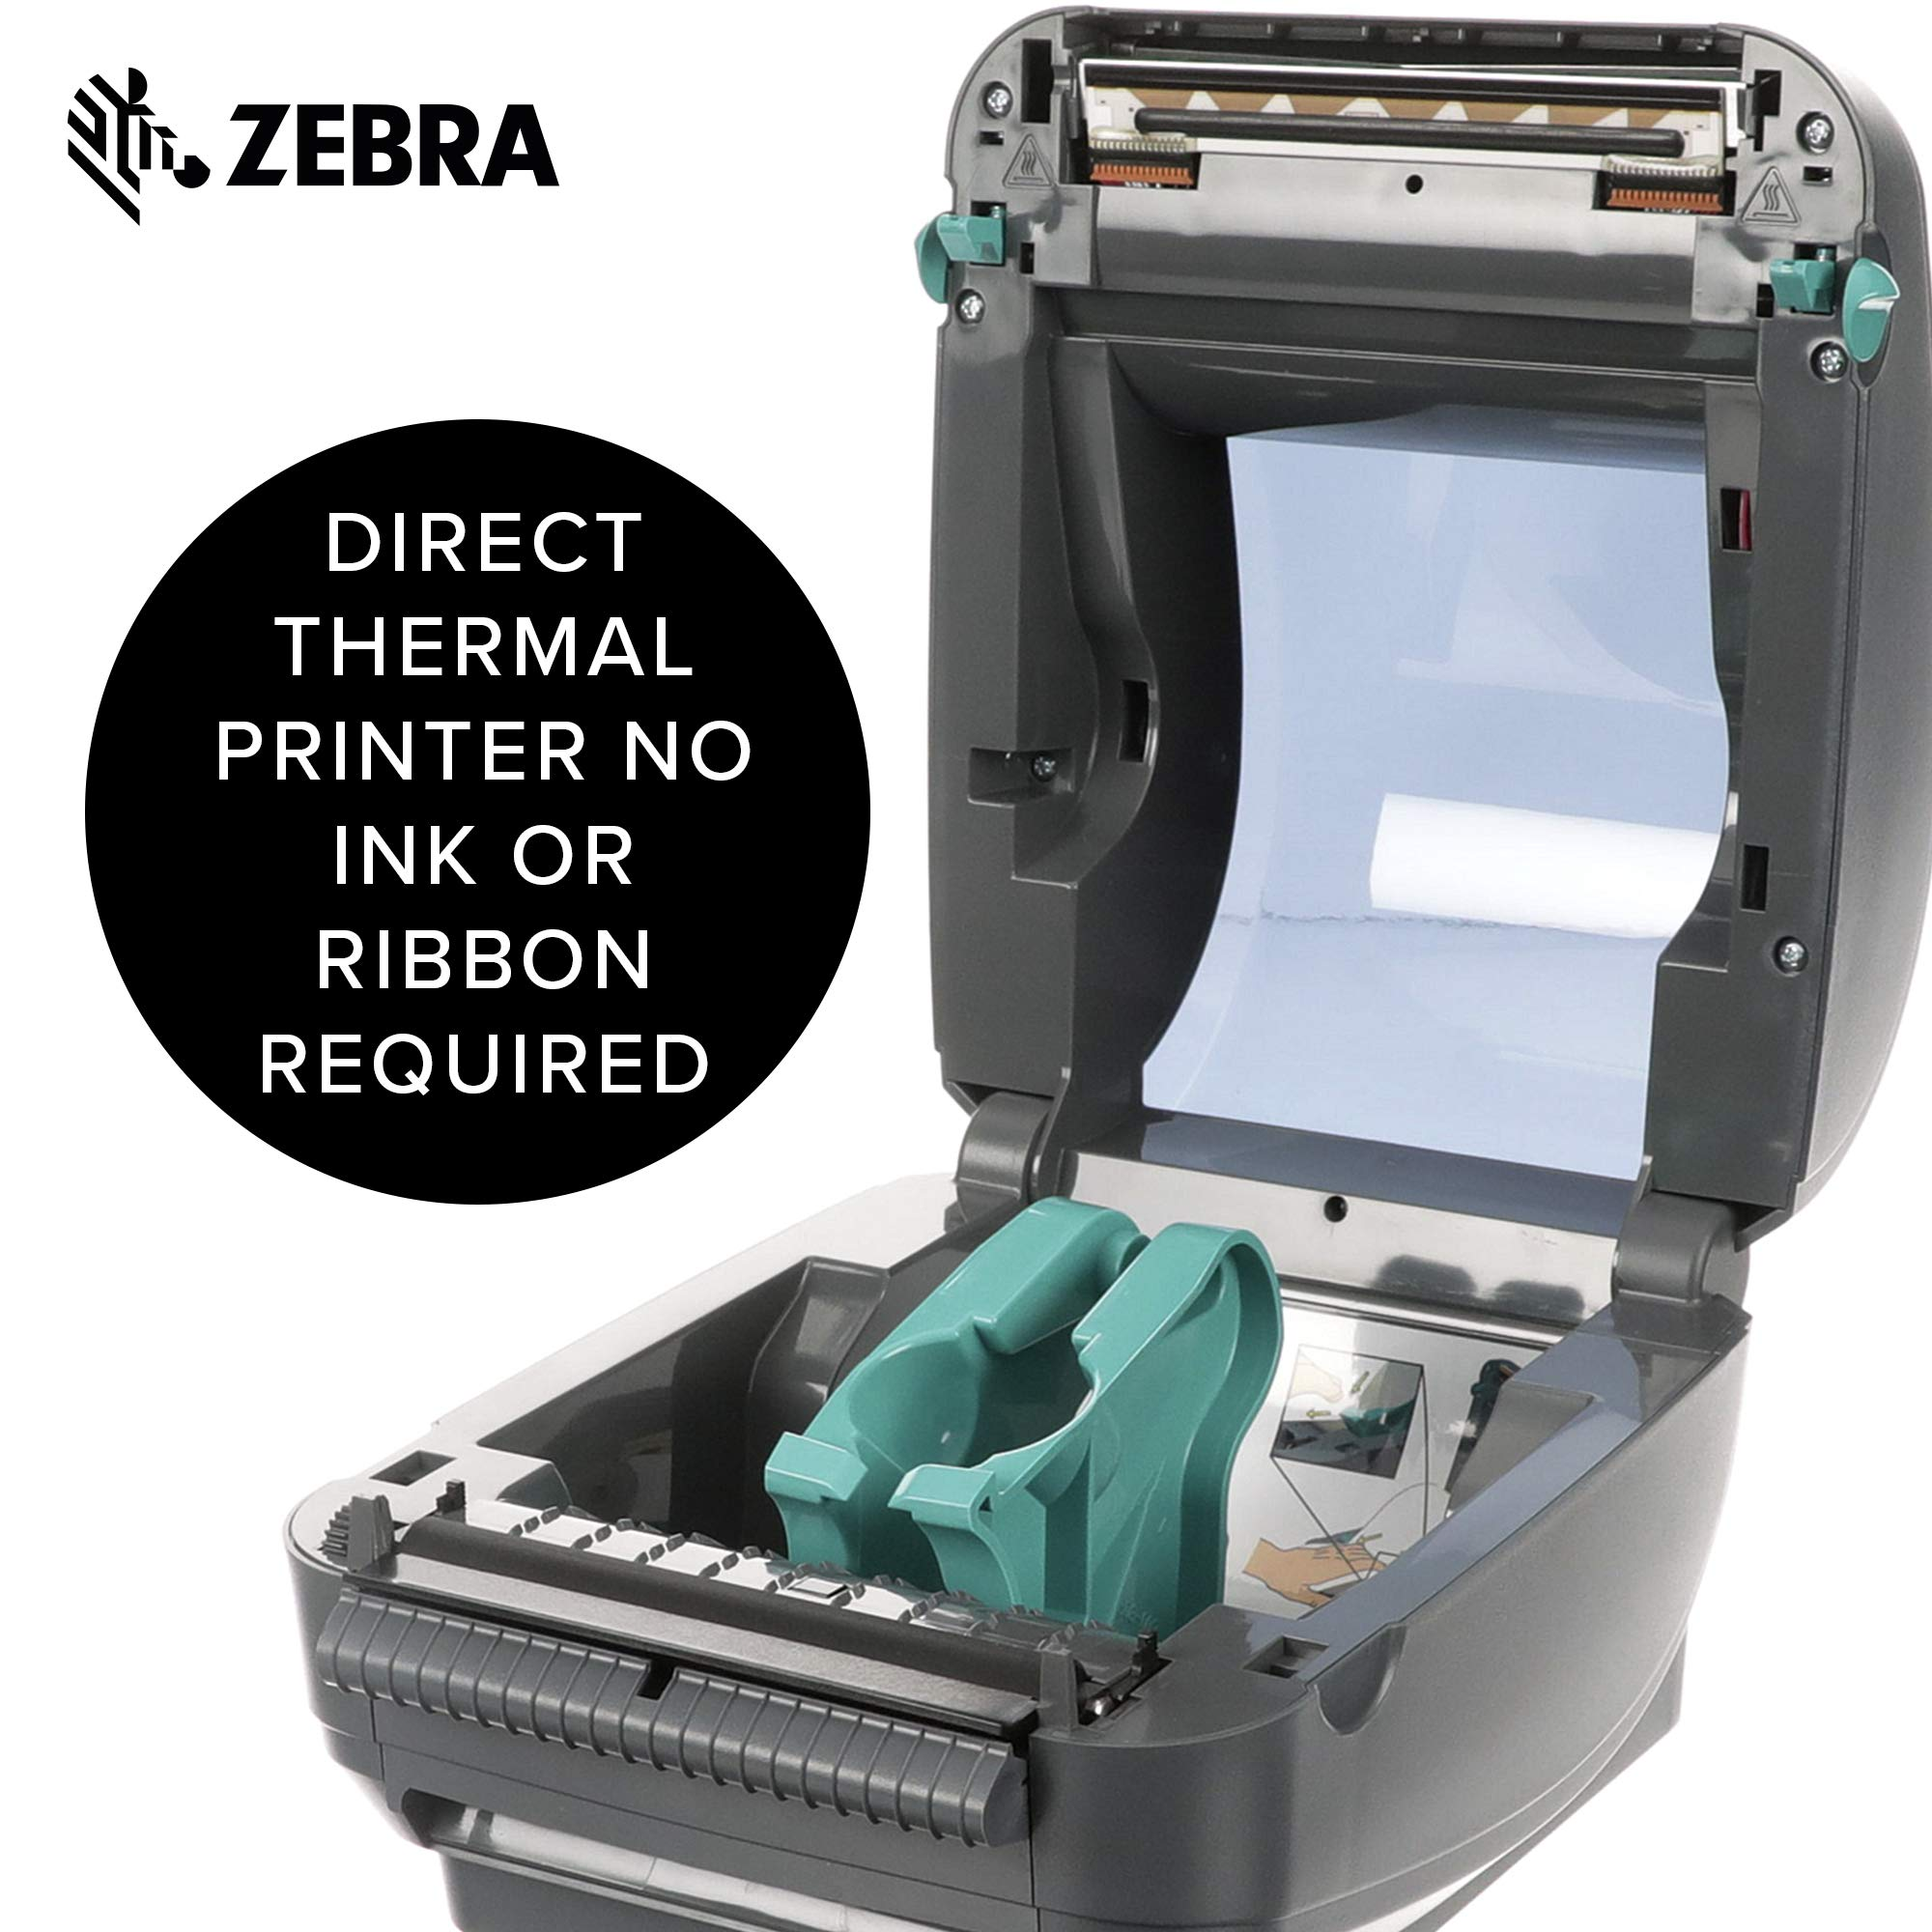 Zebra - GX420d Direct Thermal Desktop Printer for Labels, Receipts, Barcodes, Tags, and Wrist Bands - Print Width of 4 in - USB, Serial, and Ethernet Port Connectivity (Includes Peeler) by ZEBRA (Image #4)